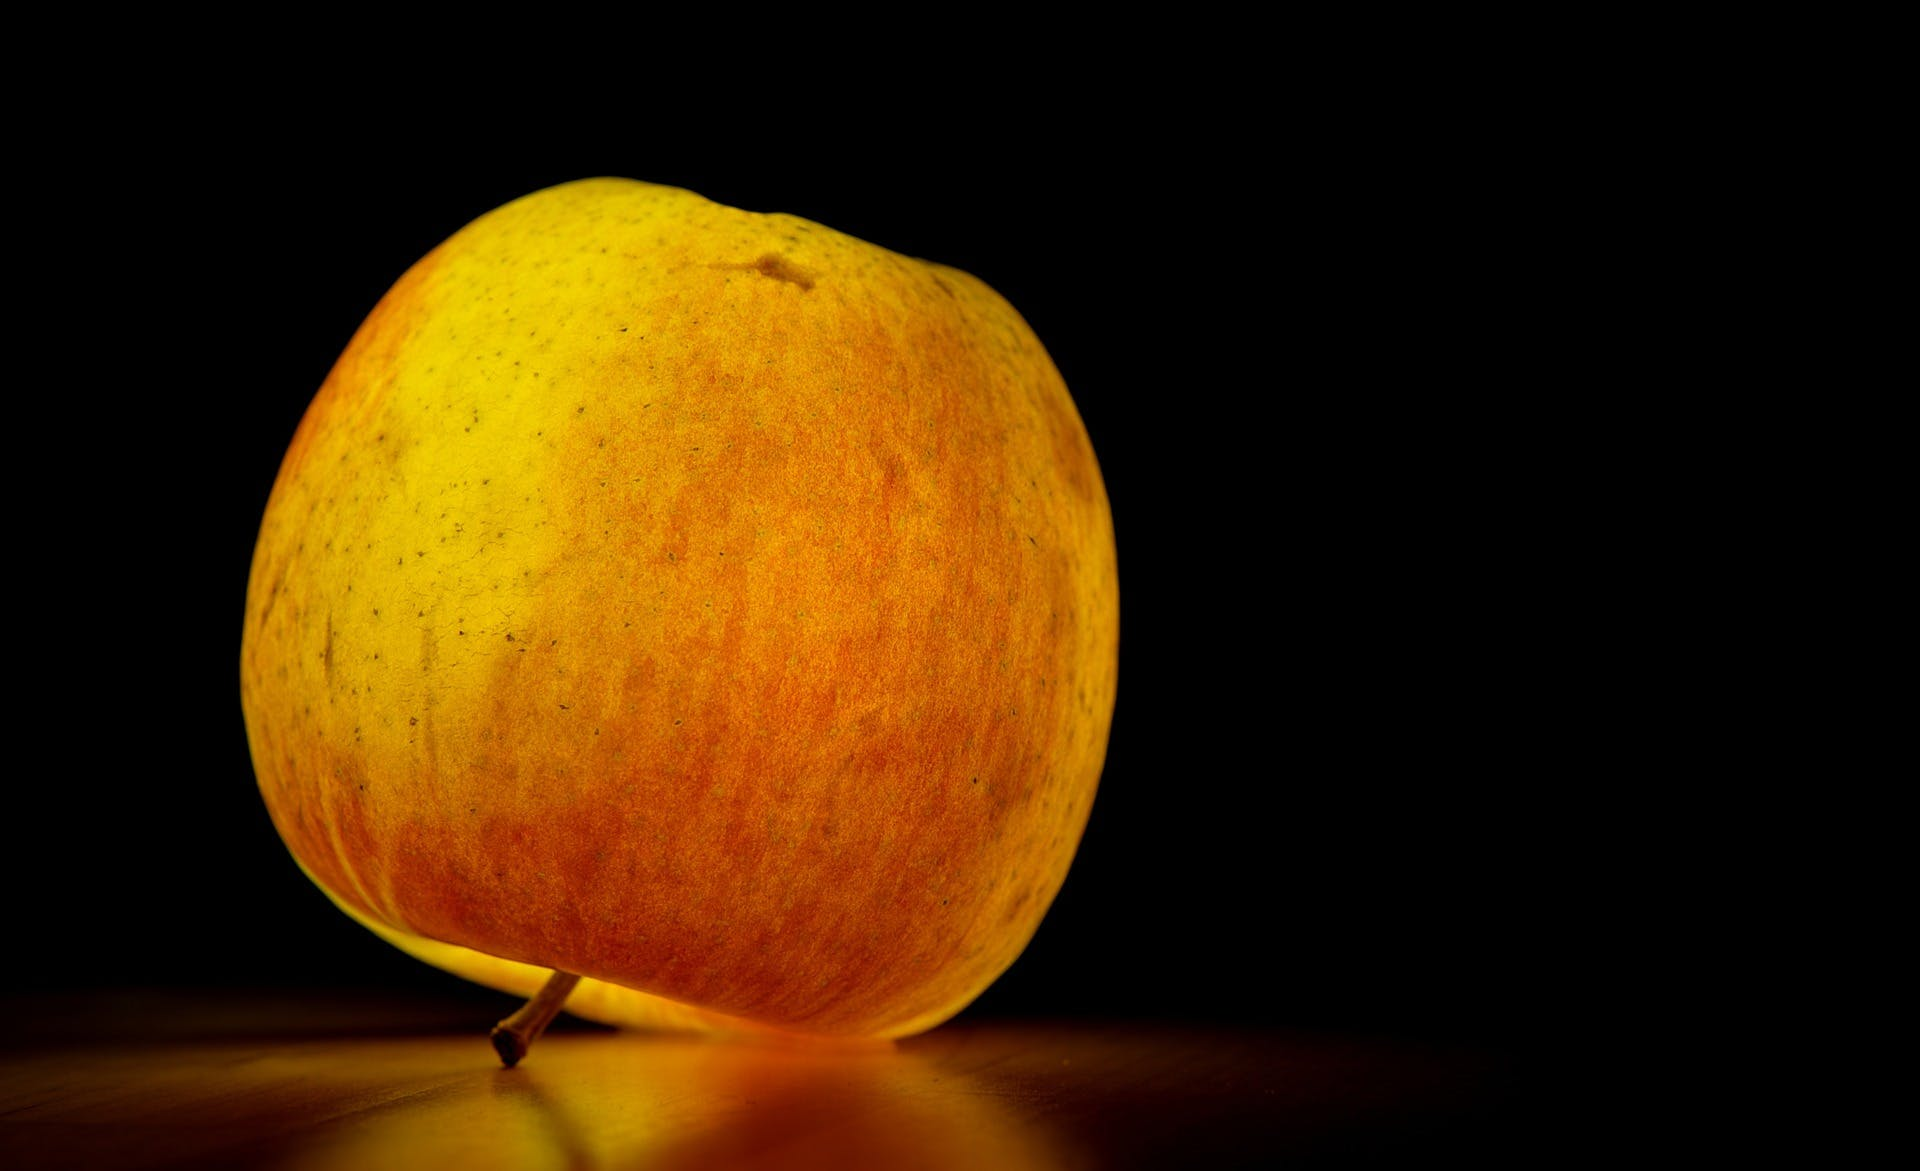 Lighted Apple over Black Surface